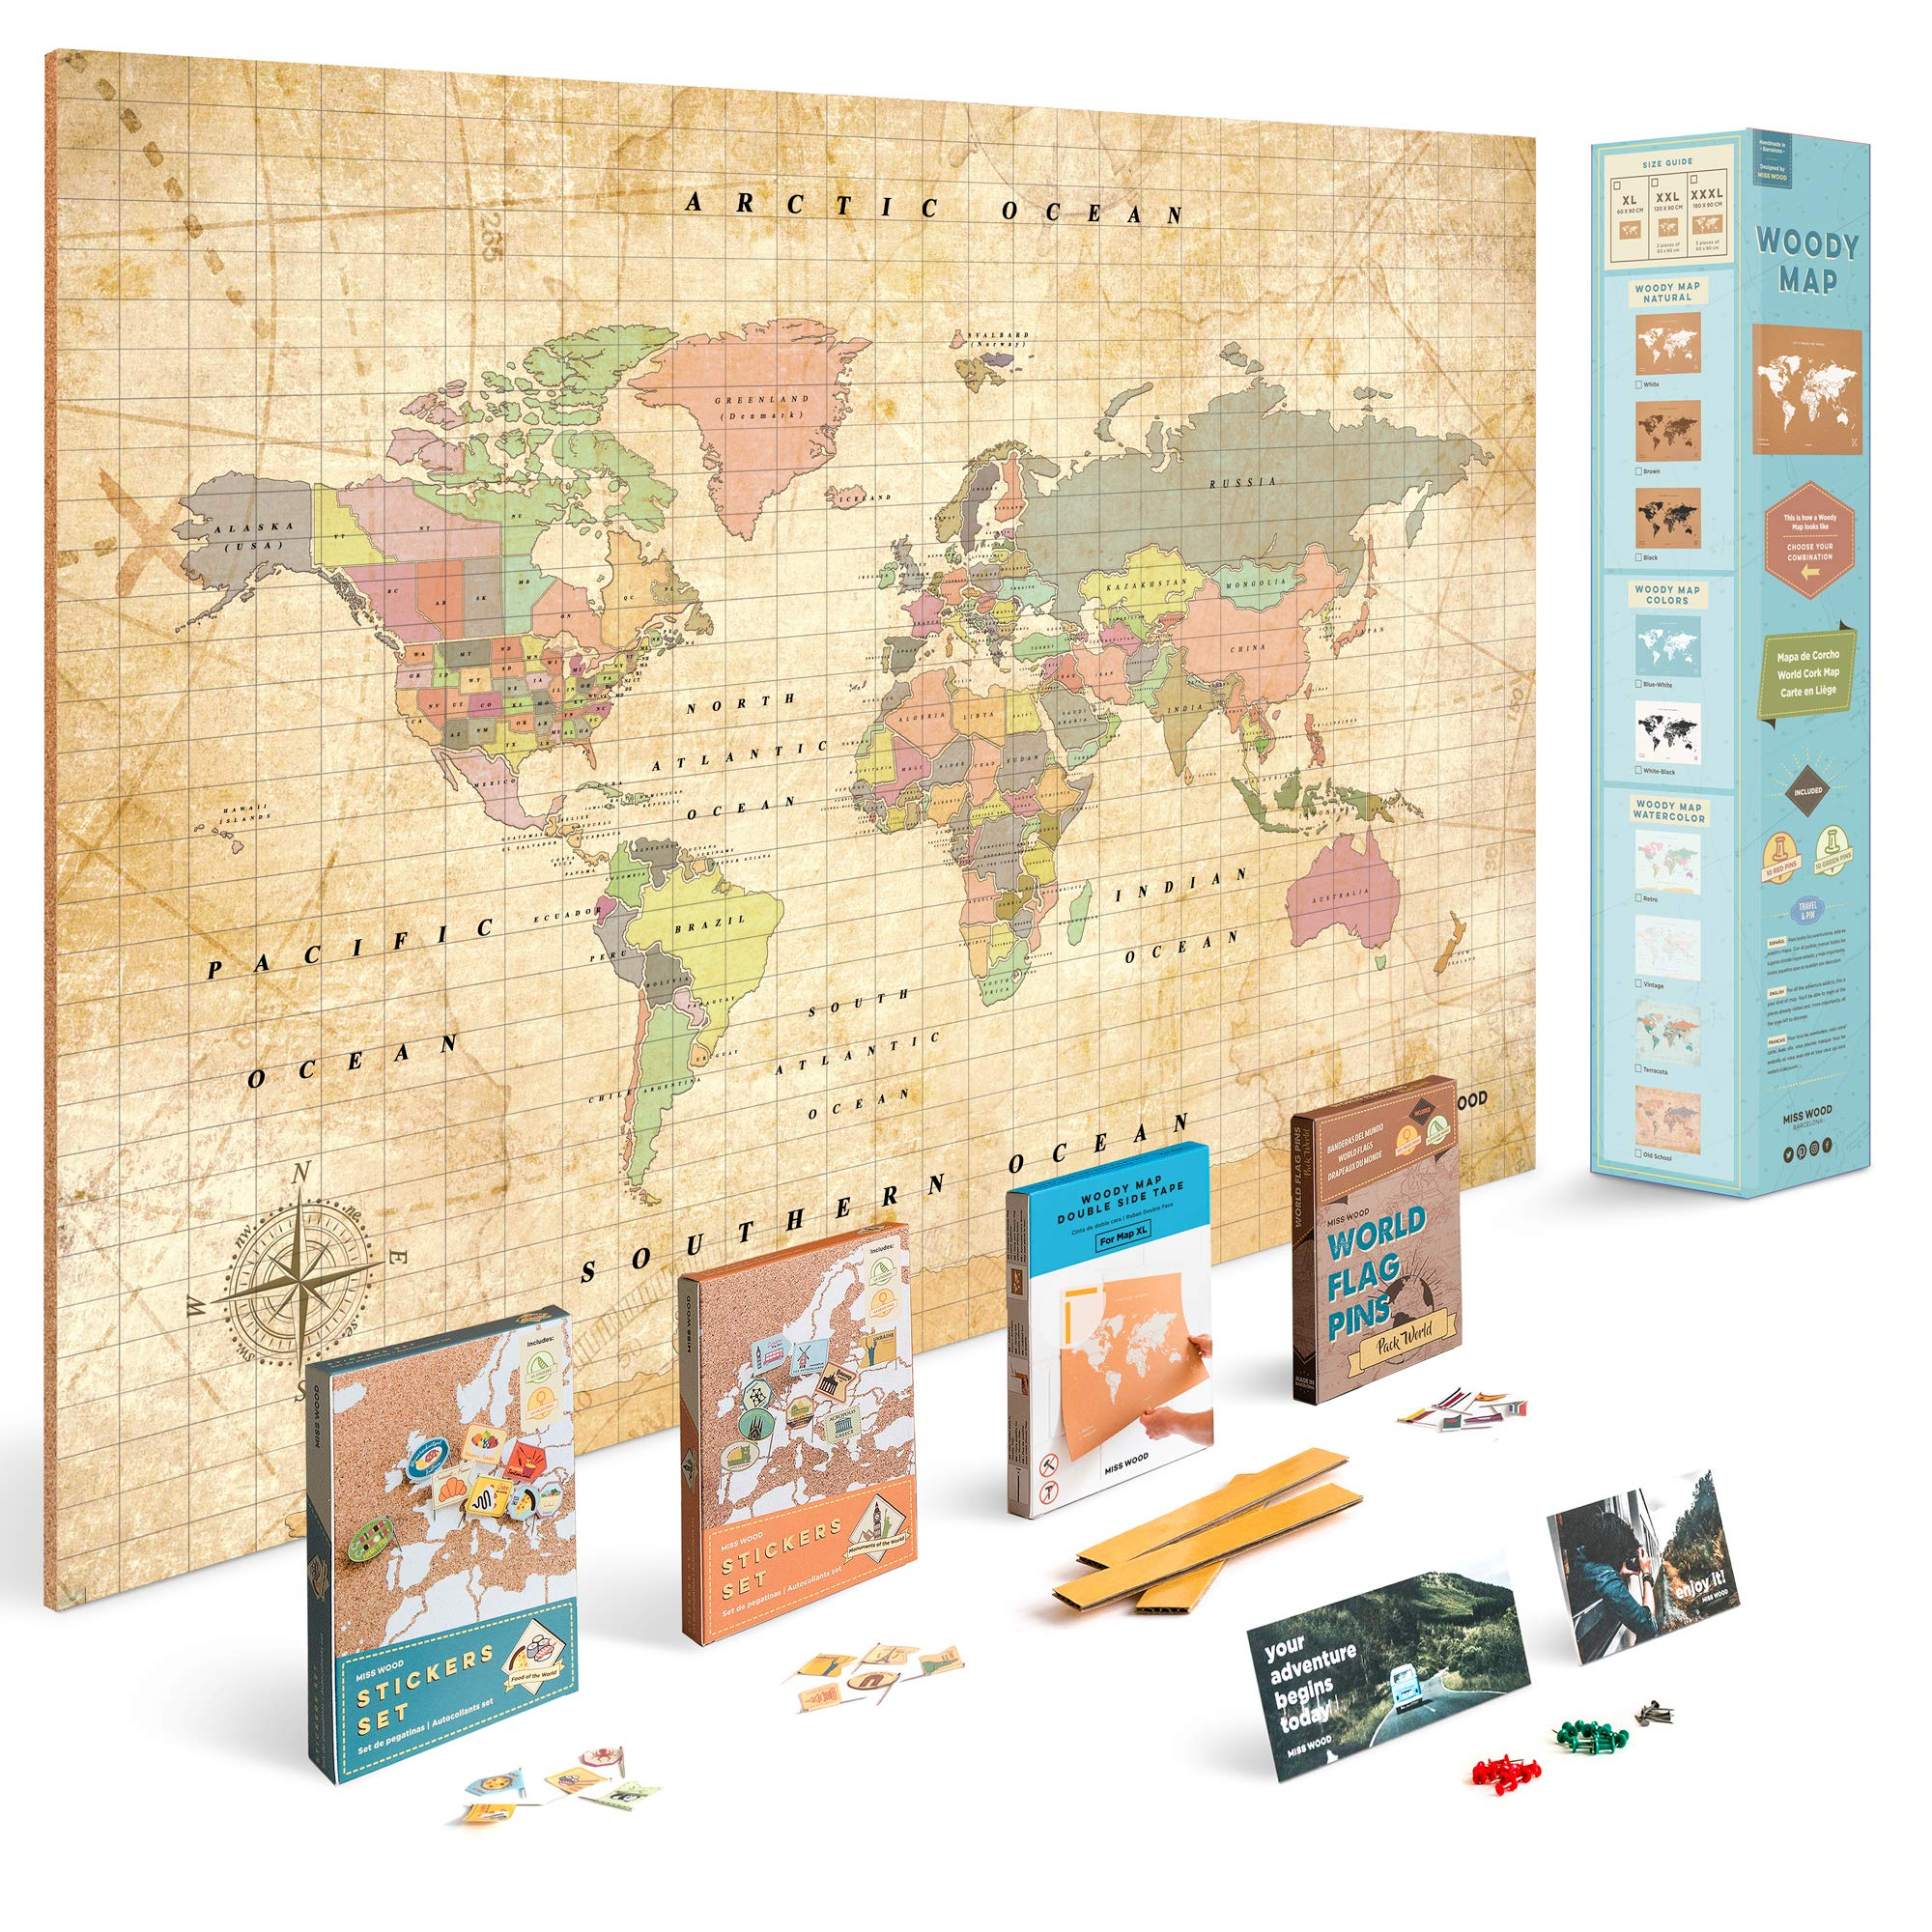 Push Pin Travel Map Kit Includes: Cork World Travel Map, World Flags, Monument and Food Stickers, for Travelers (Old School, XL (23.6 x 35.4 inches))